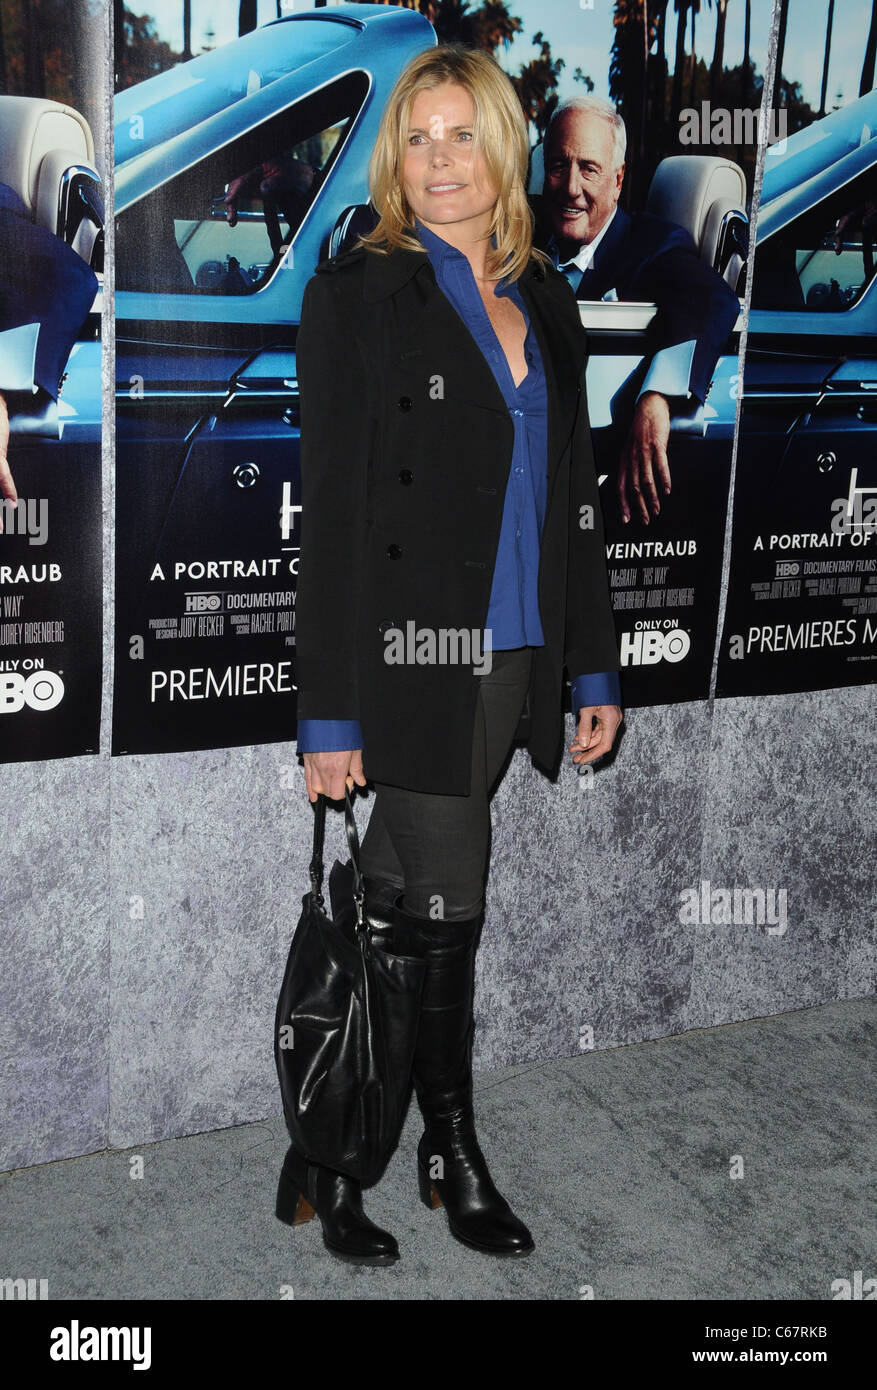 Mariel Hemingway at arrivals for HIS WAY Premiere, The Paramount Theater, Los Angeles, CA March 22, 2011. Photo Stock Photo